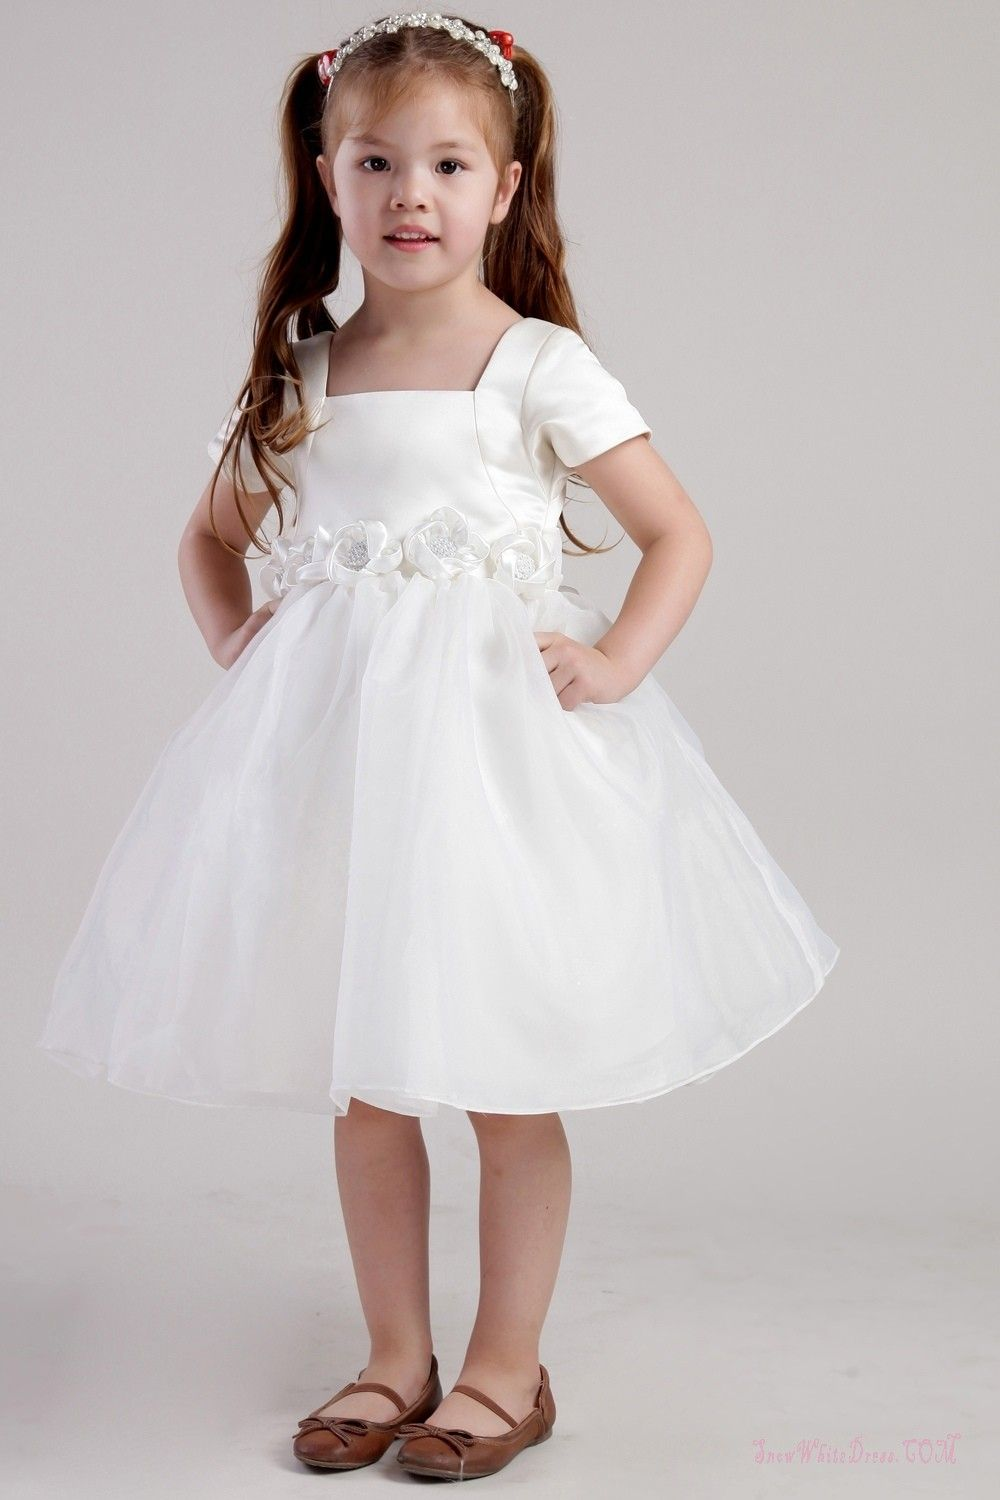 Toddlerflowergirldresses find toddler flower girl dresses for toddlerflowergirldresses find toddler flower girl dresses for your angel izmirmasajfo